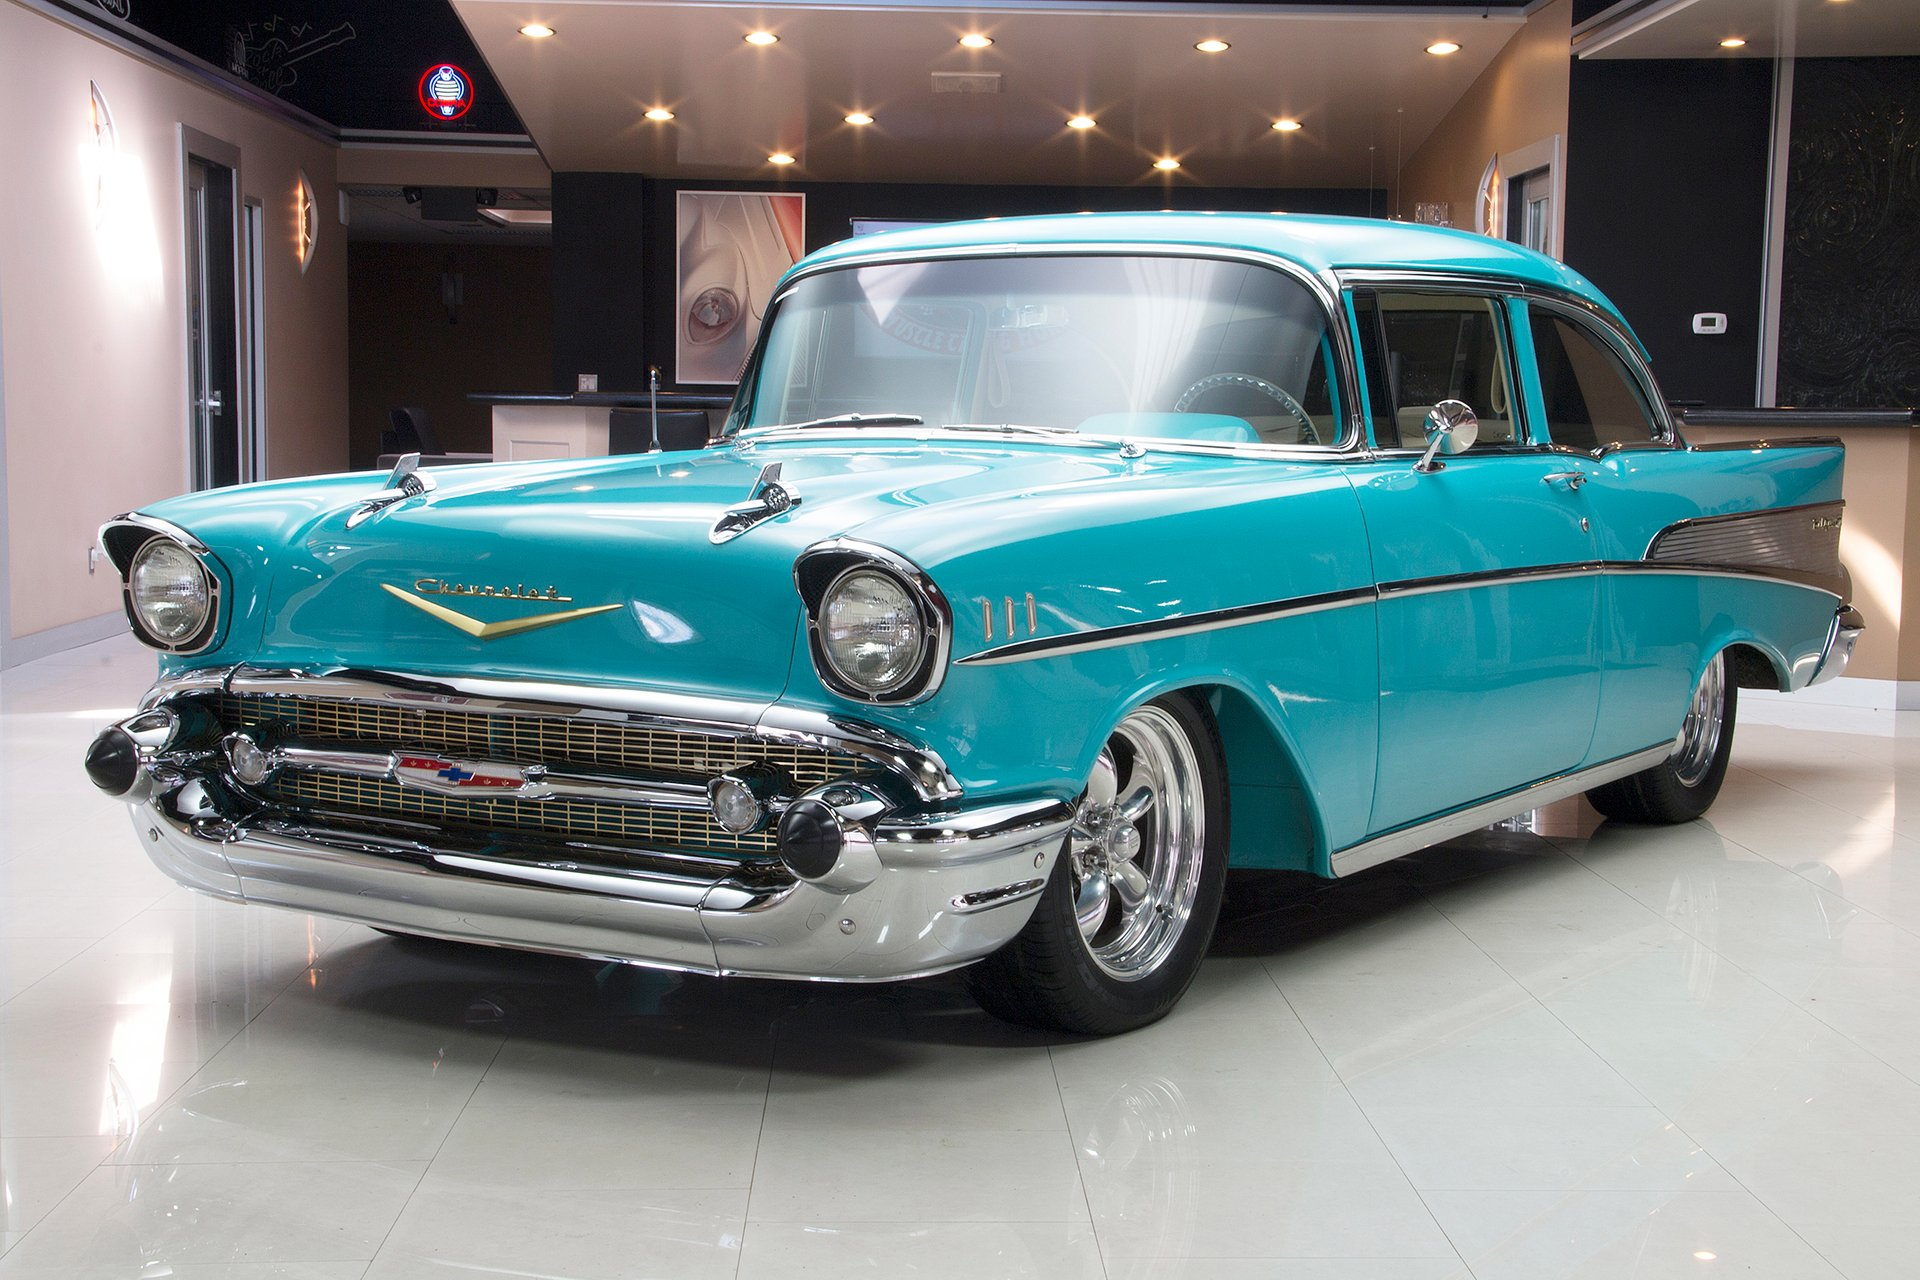 1957 Chevrolet 210 Classic Cars For Sale Michigan Muscle Old Chevy Bel Air Interior